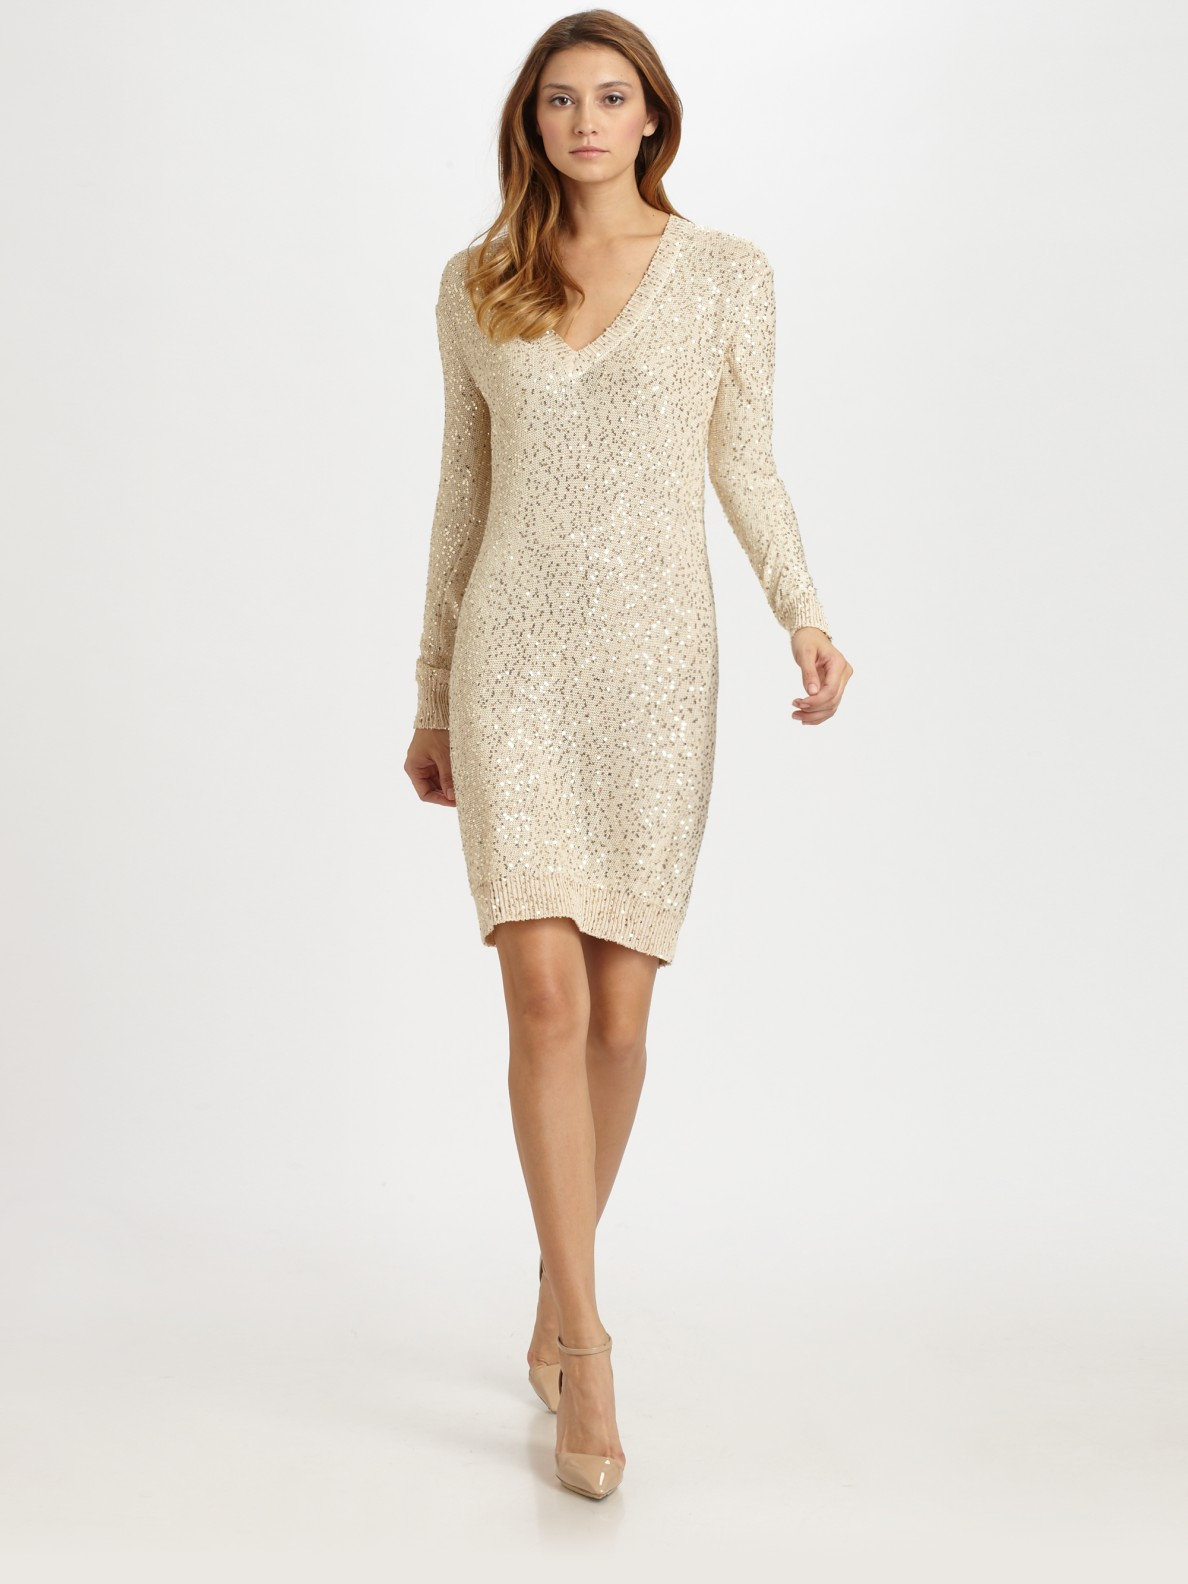 Stella mccartney Sequined Sweater Dress in White  Lyst